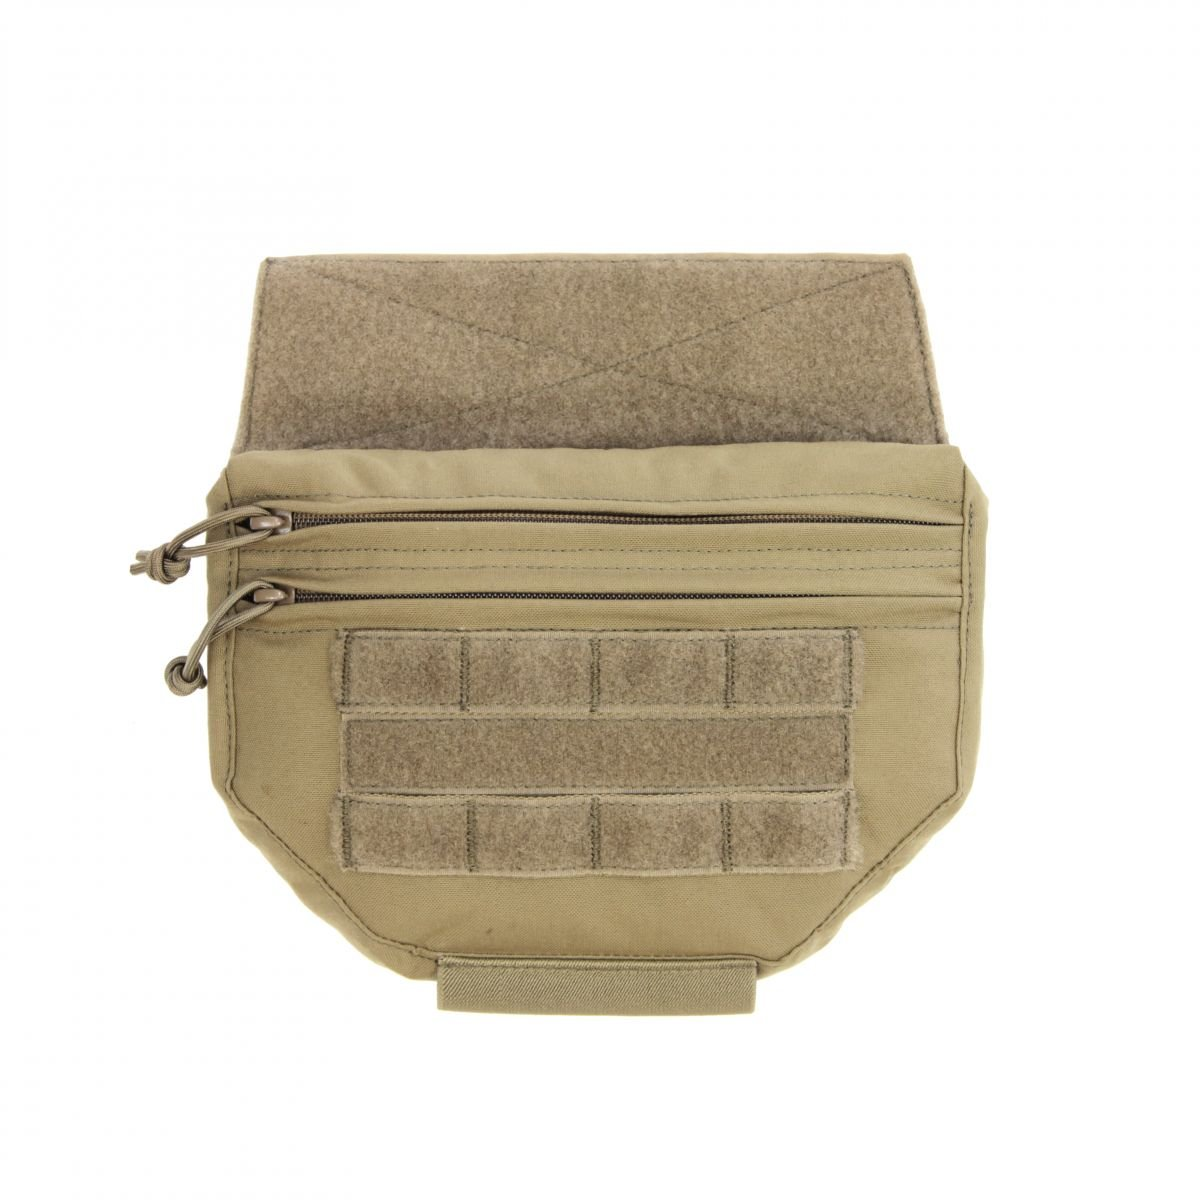 WARRIOR - A.S... Warrior Drop Down Utility Pouch